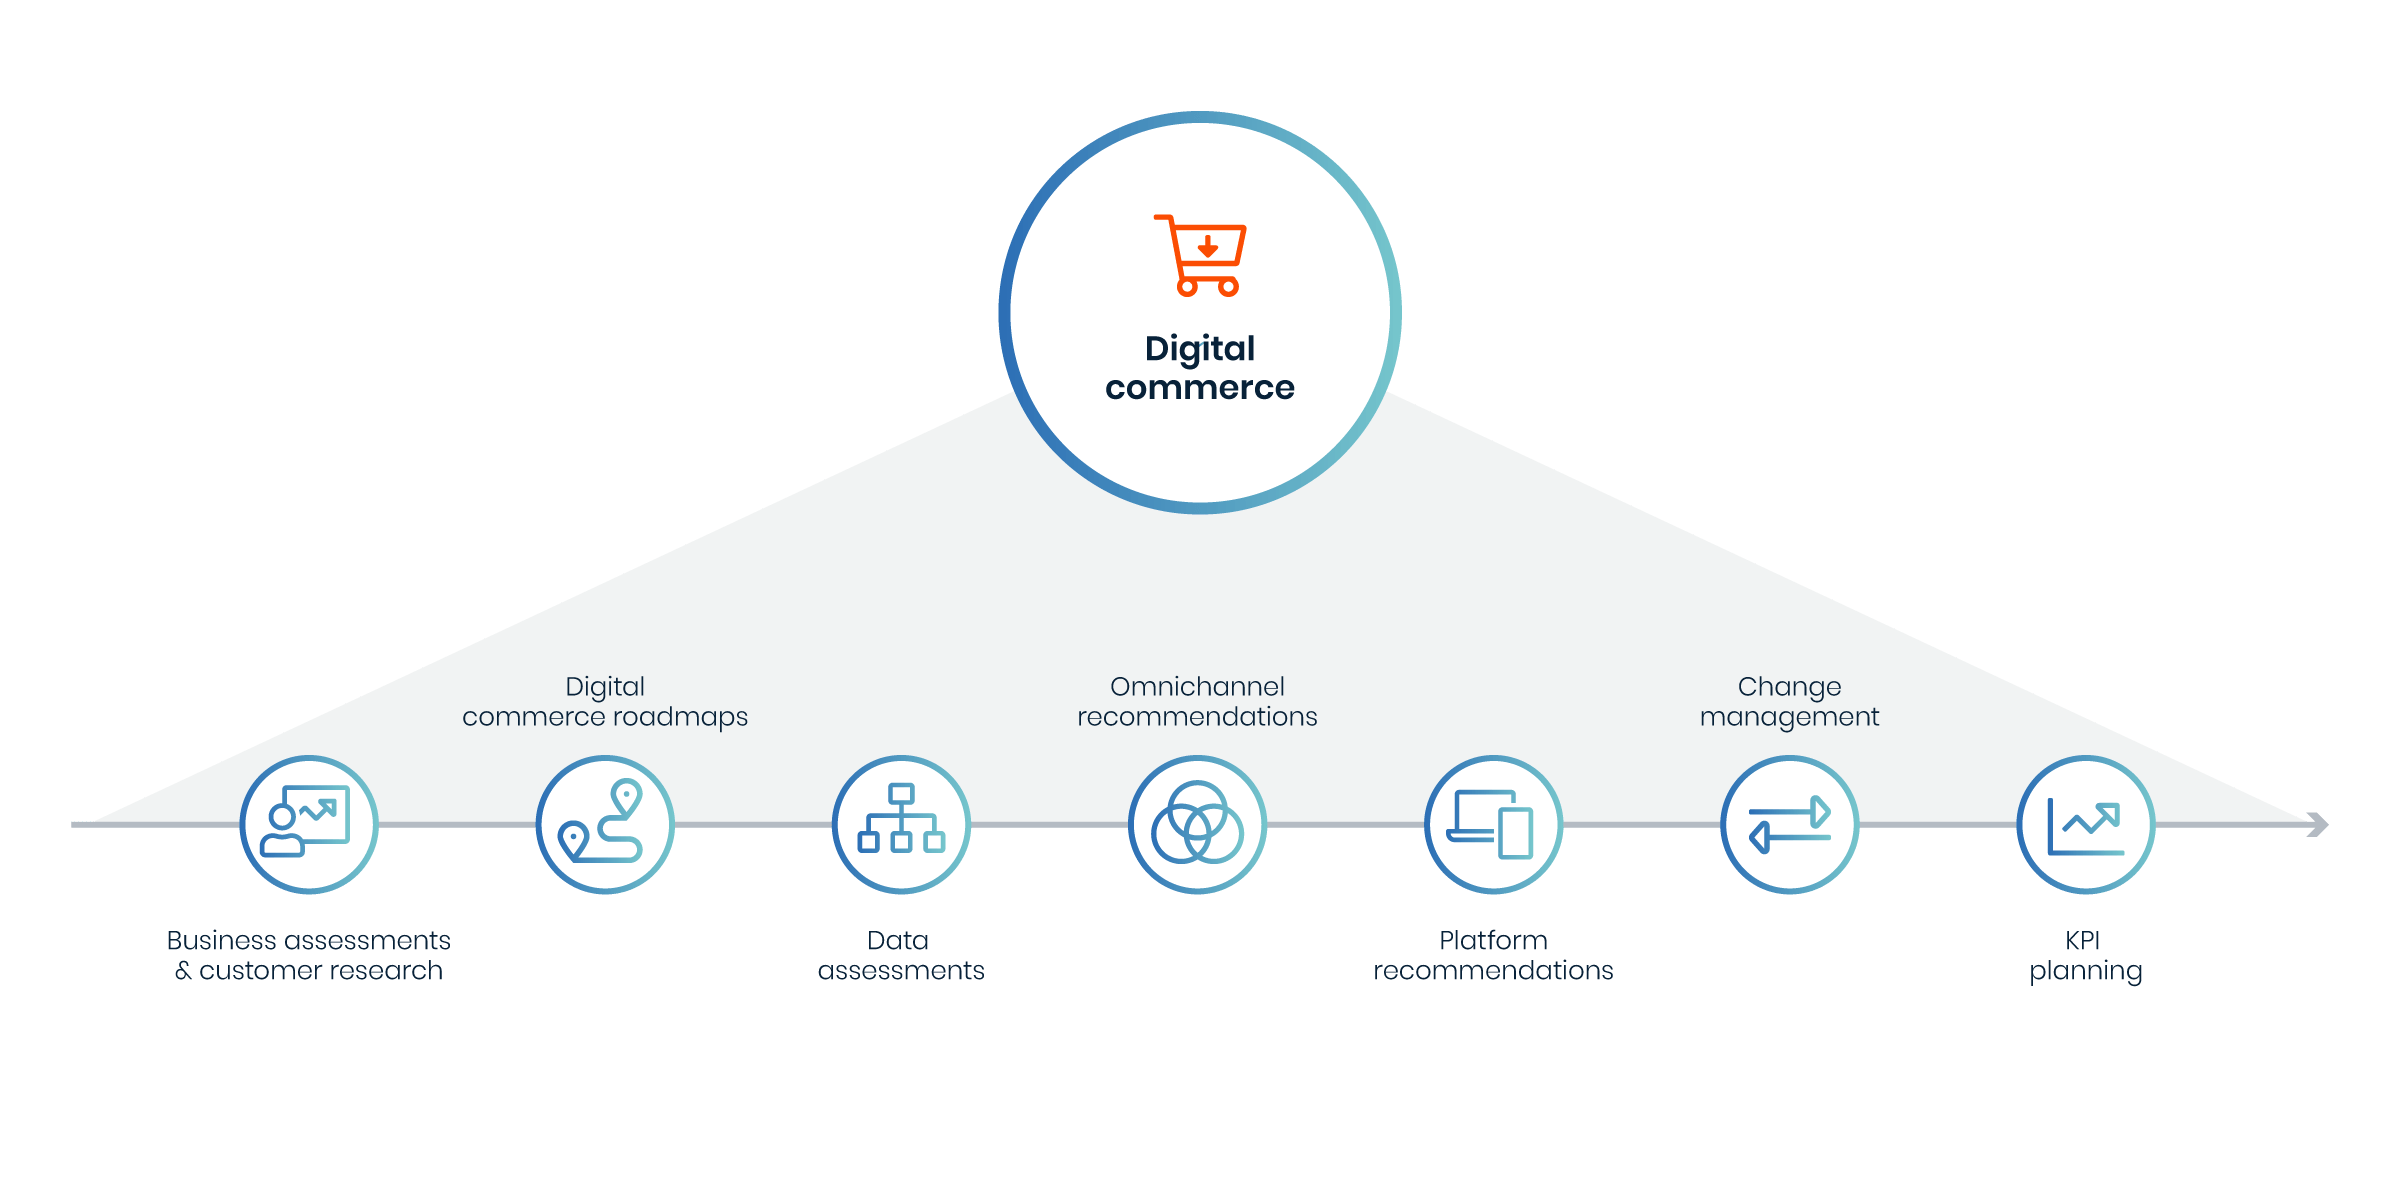 Avensia digital commerce offer